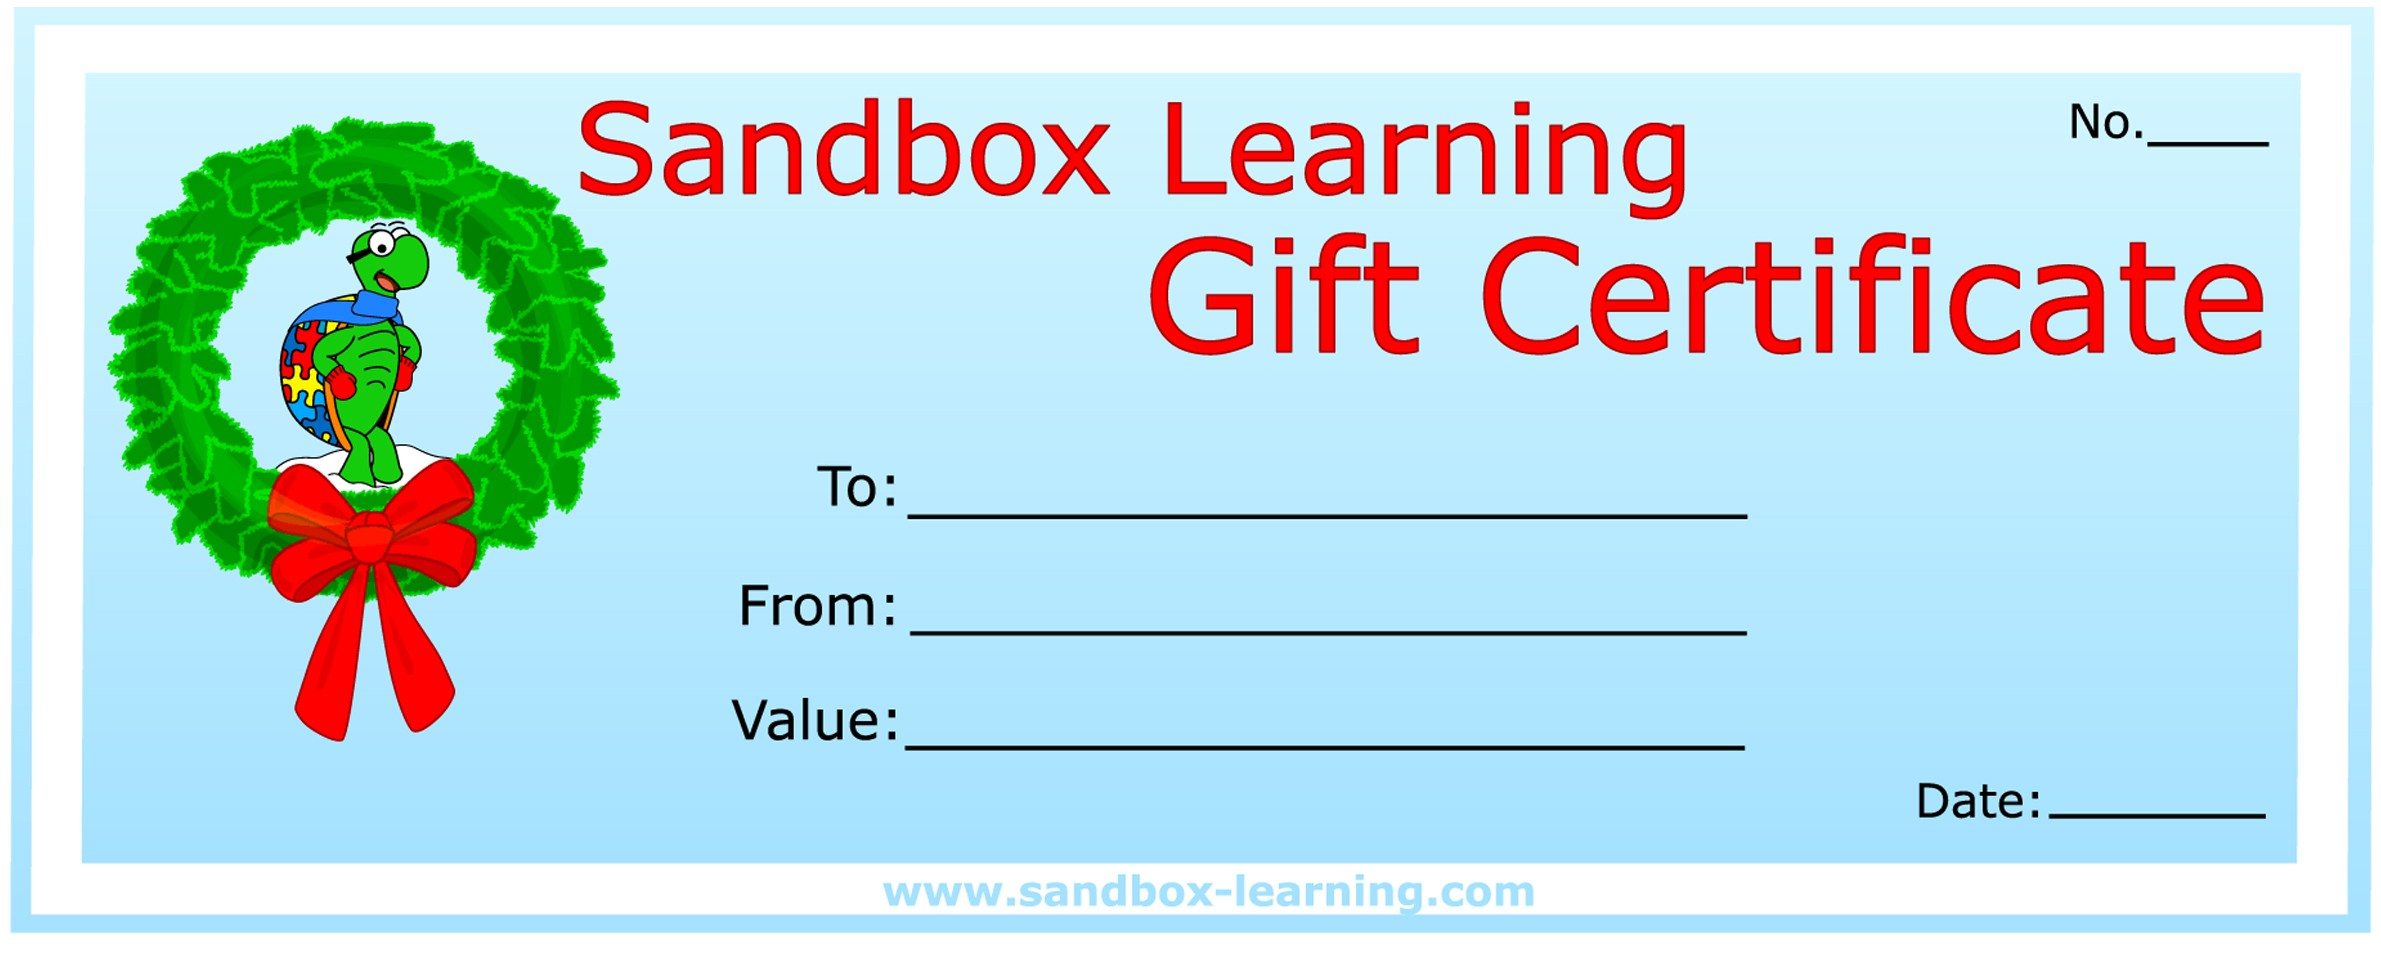 gift certificates sandbox learning gift certificates are the perfect solution for holiday birthday special occasion and thank you gift giving